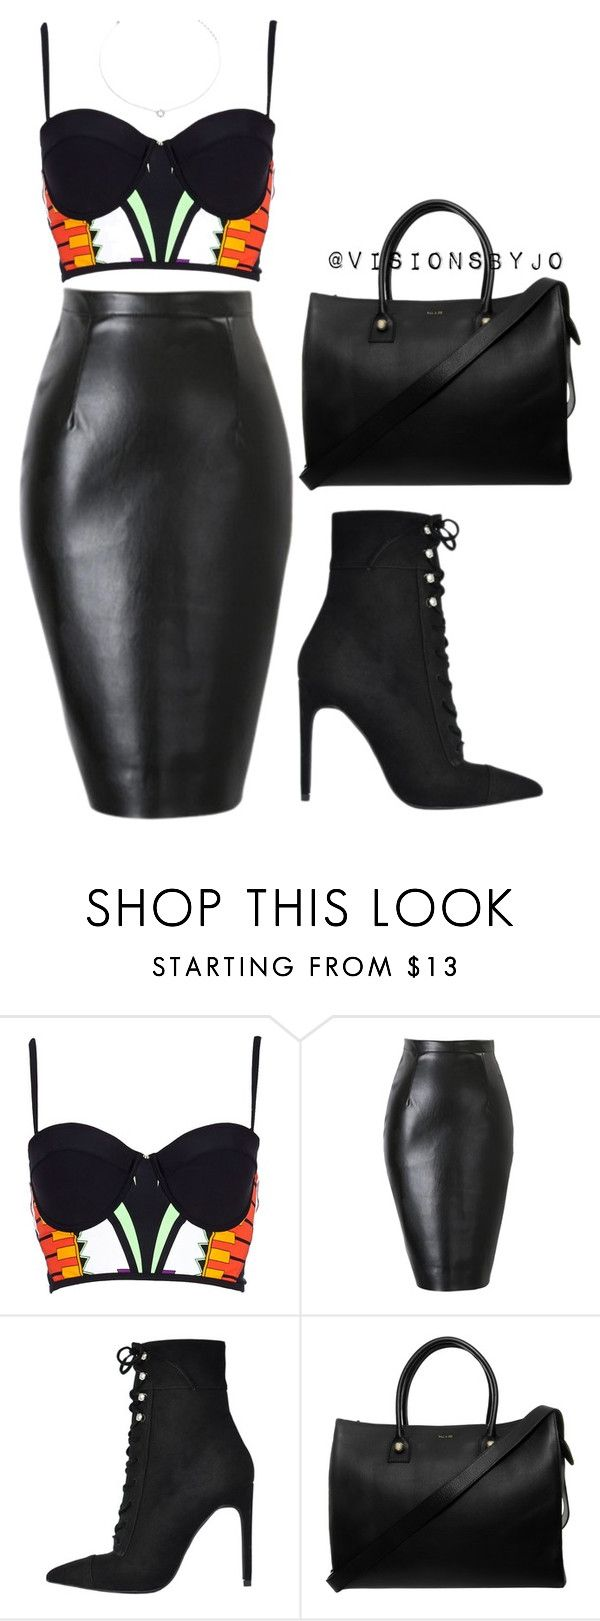 """""""Untitled #1141"""" by visionsbyjo ❤ liked on Polyvore featuring River Island, Jeffrey Campbell, Paul & Joe and Agnes de Verneuil"""